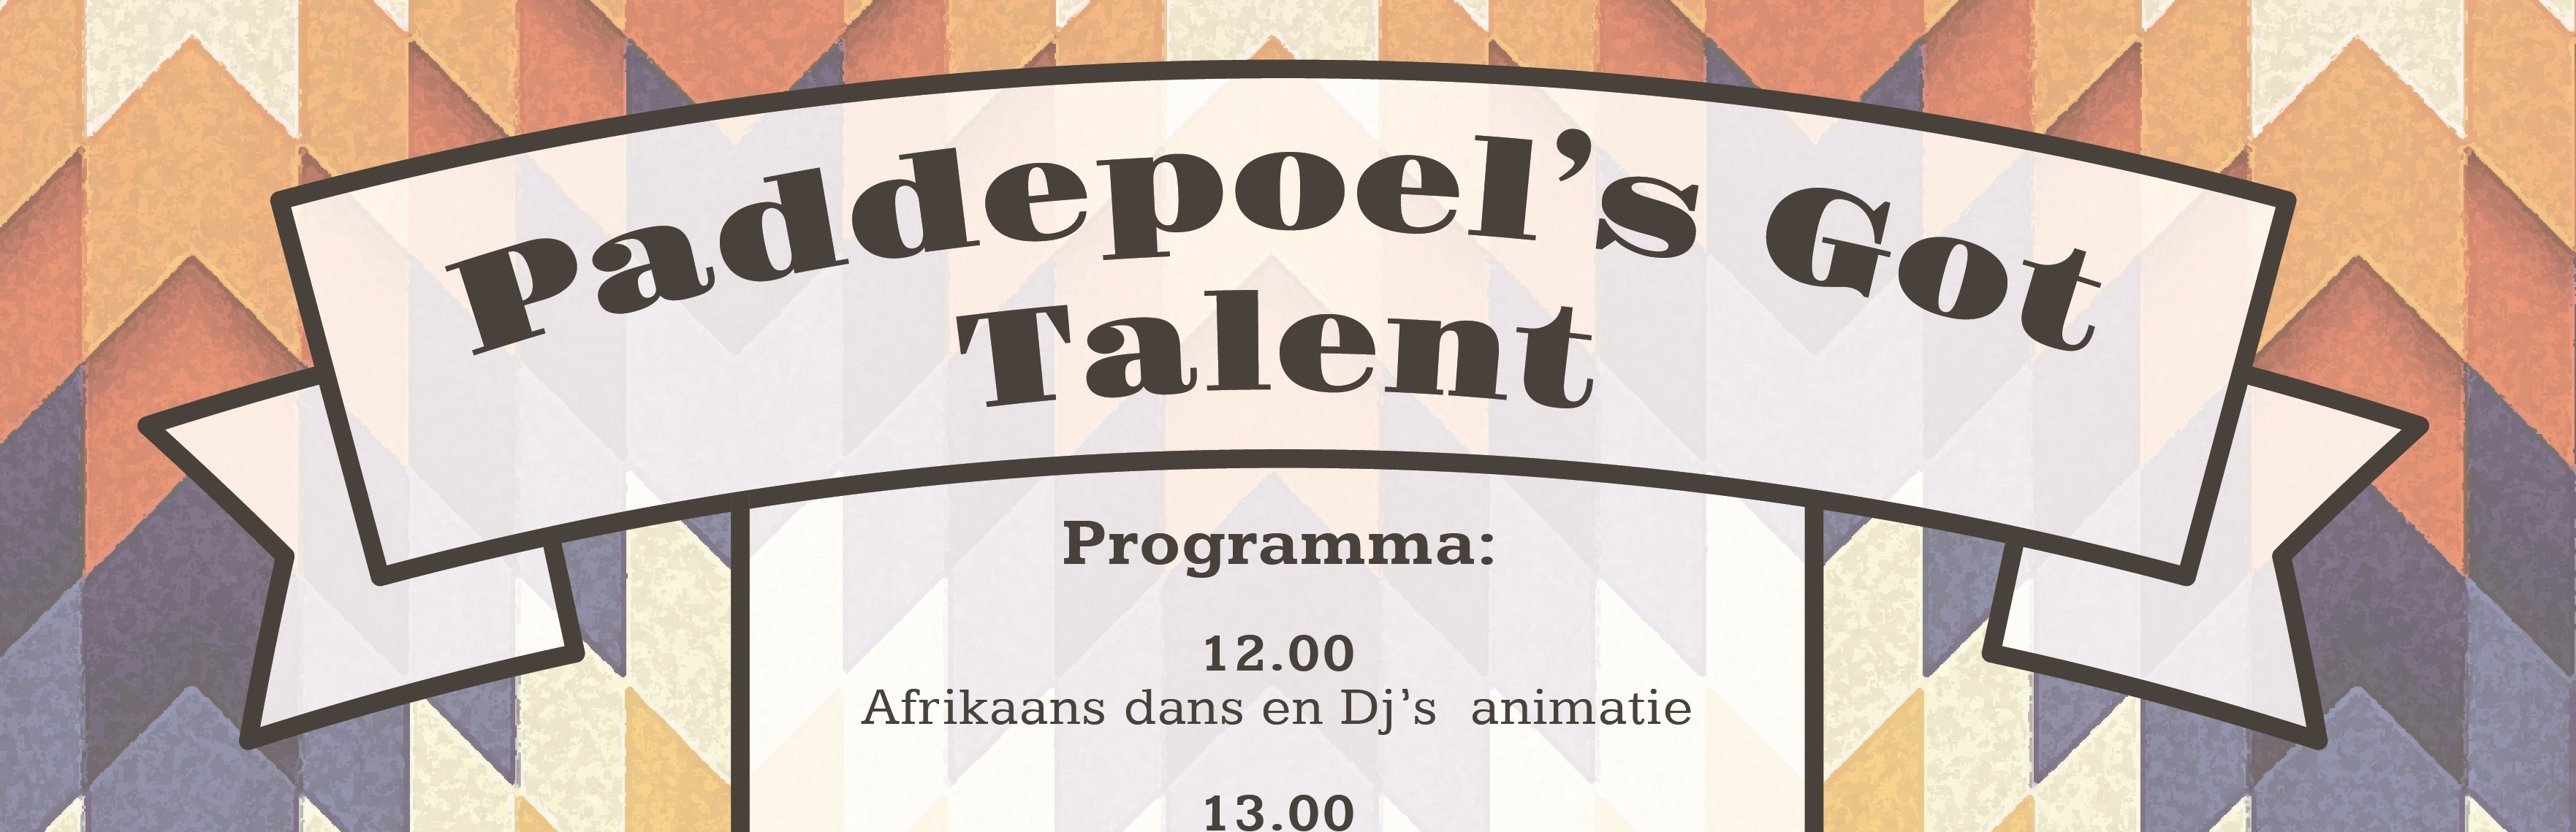 Paddepoel's got talent